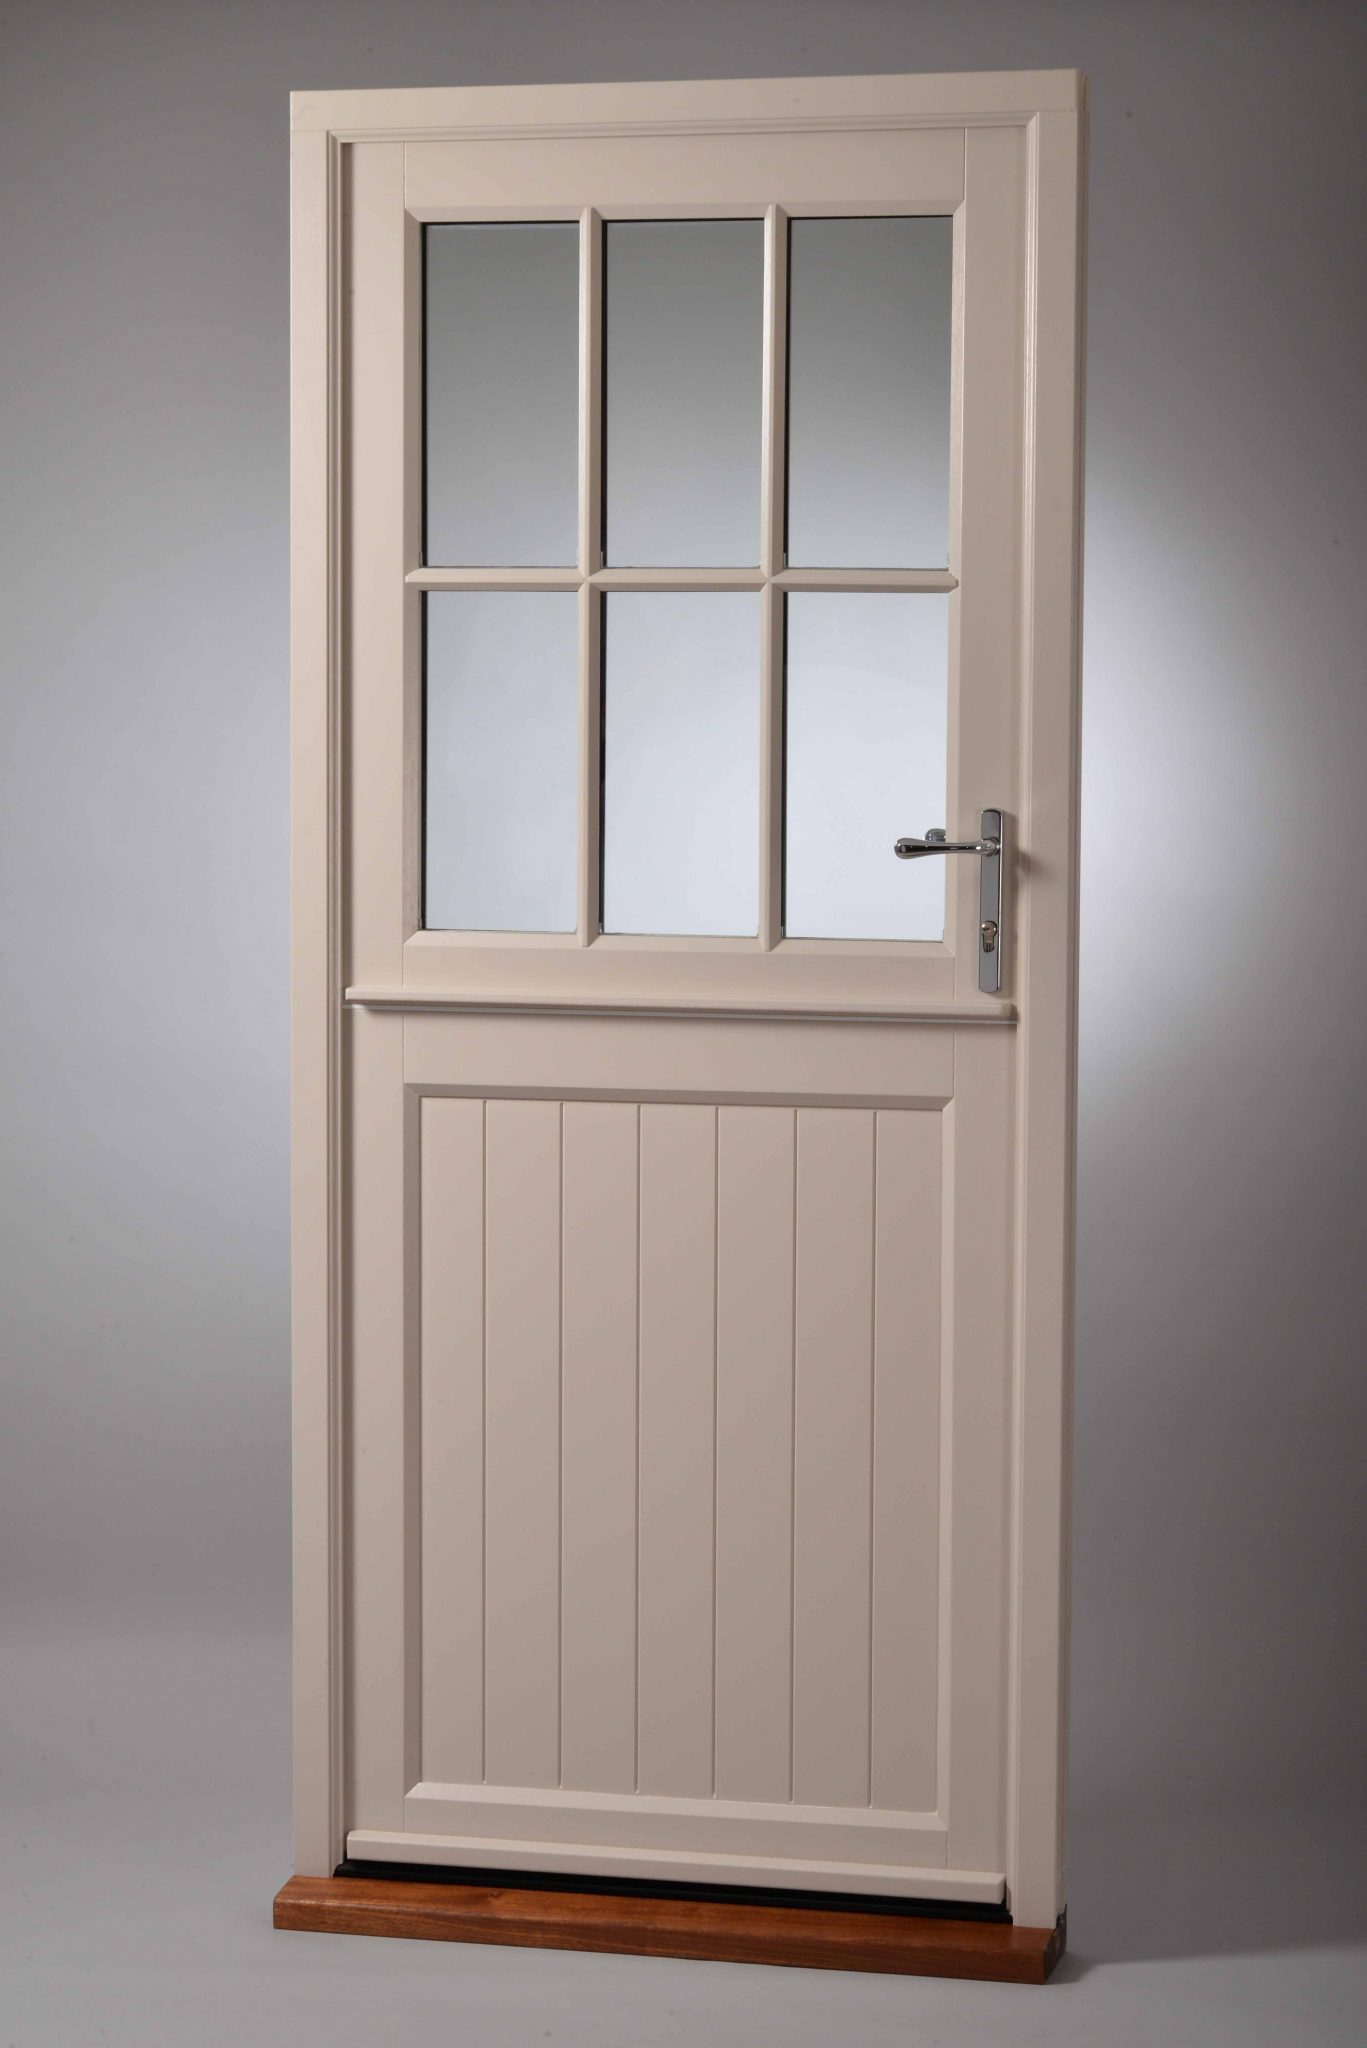 Enlarge Image & Timber Stable Doors by Patchett Joinery